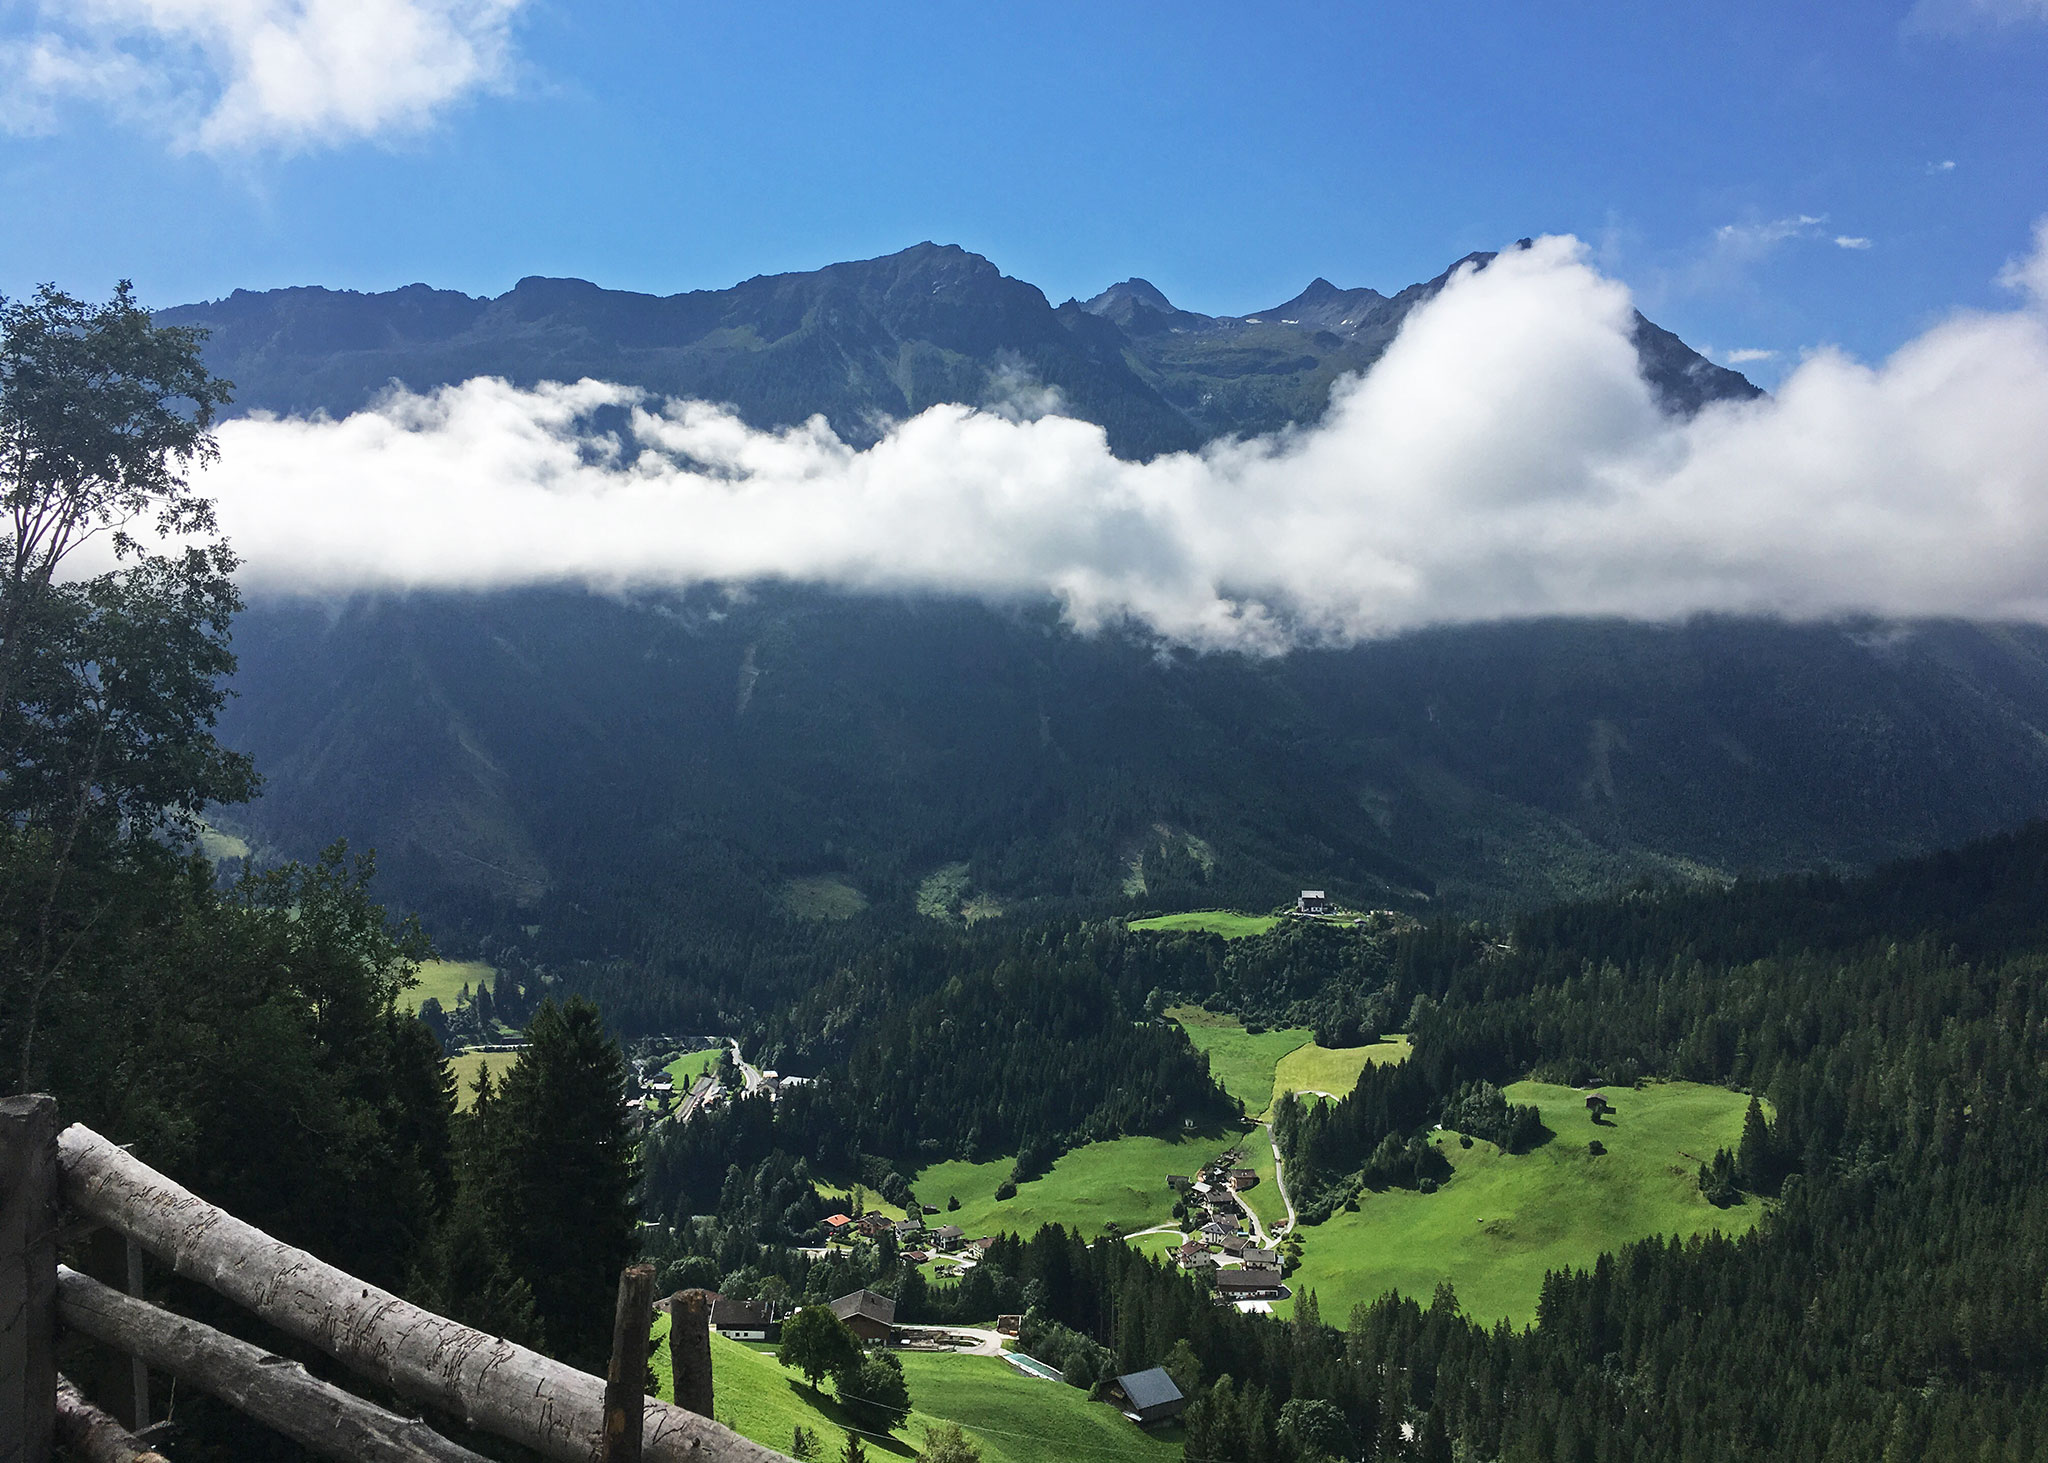 Riding up mountain side towards Zell am Ziller had views like this in plenty